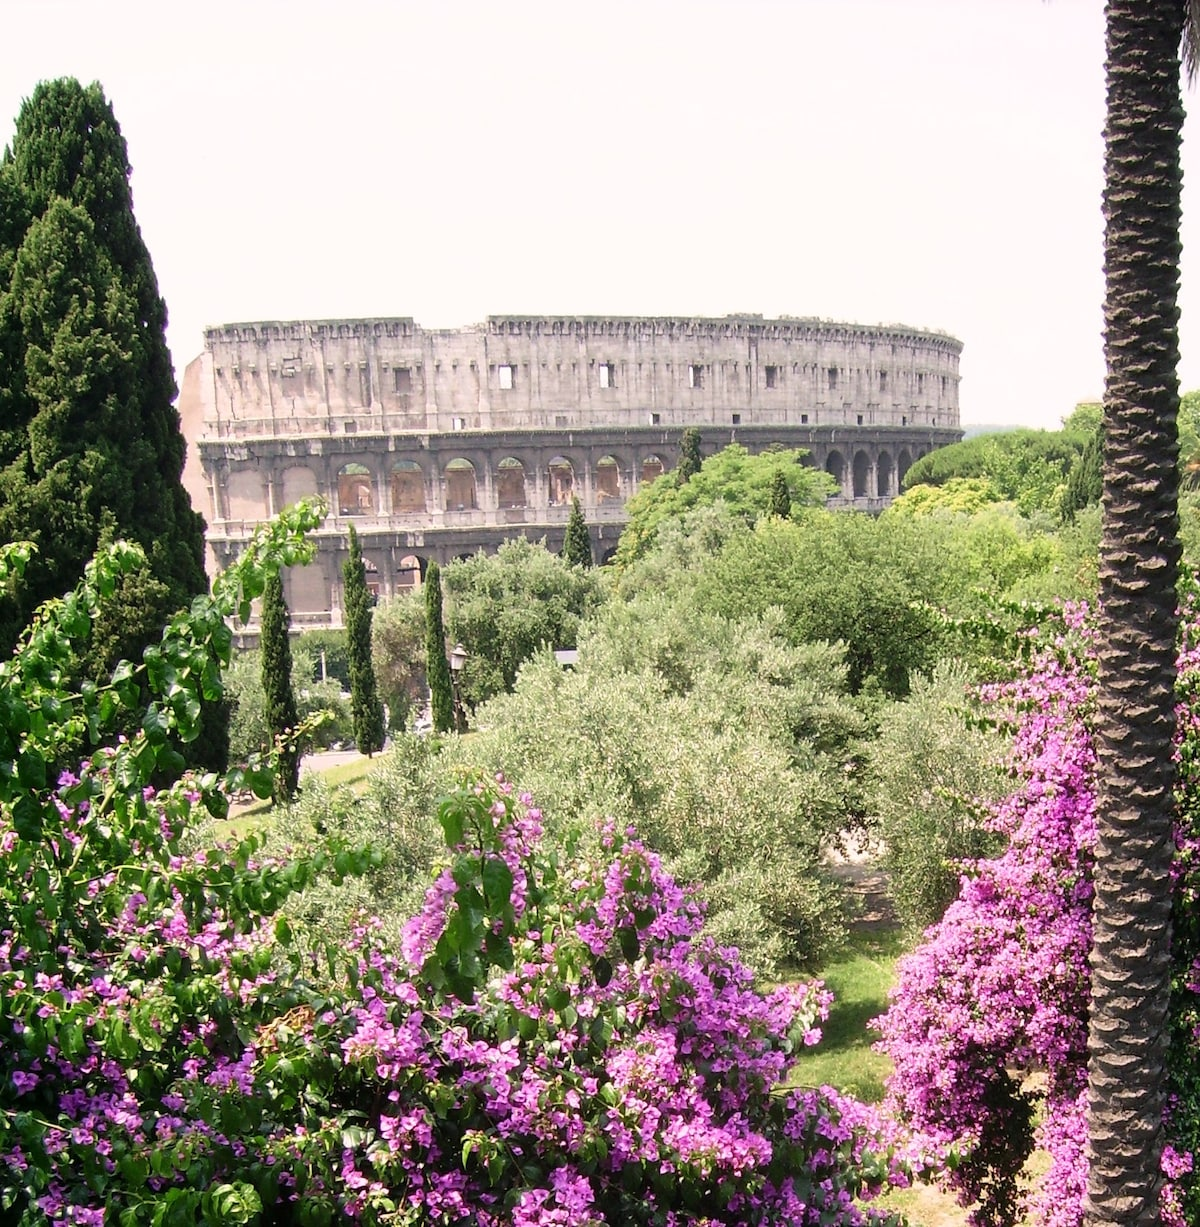 View of the Colosseum from the nearby Parco di Colle Oppio